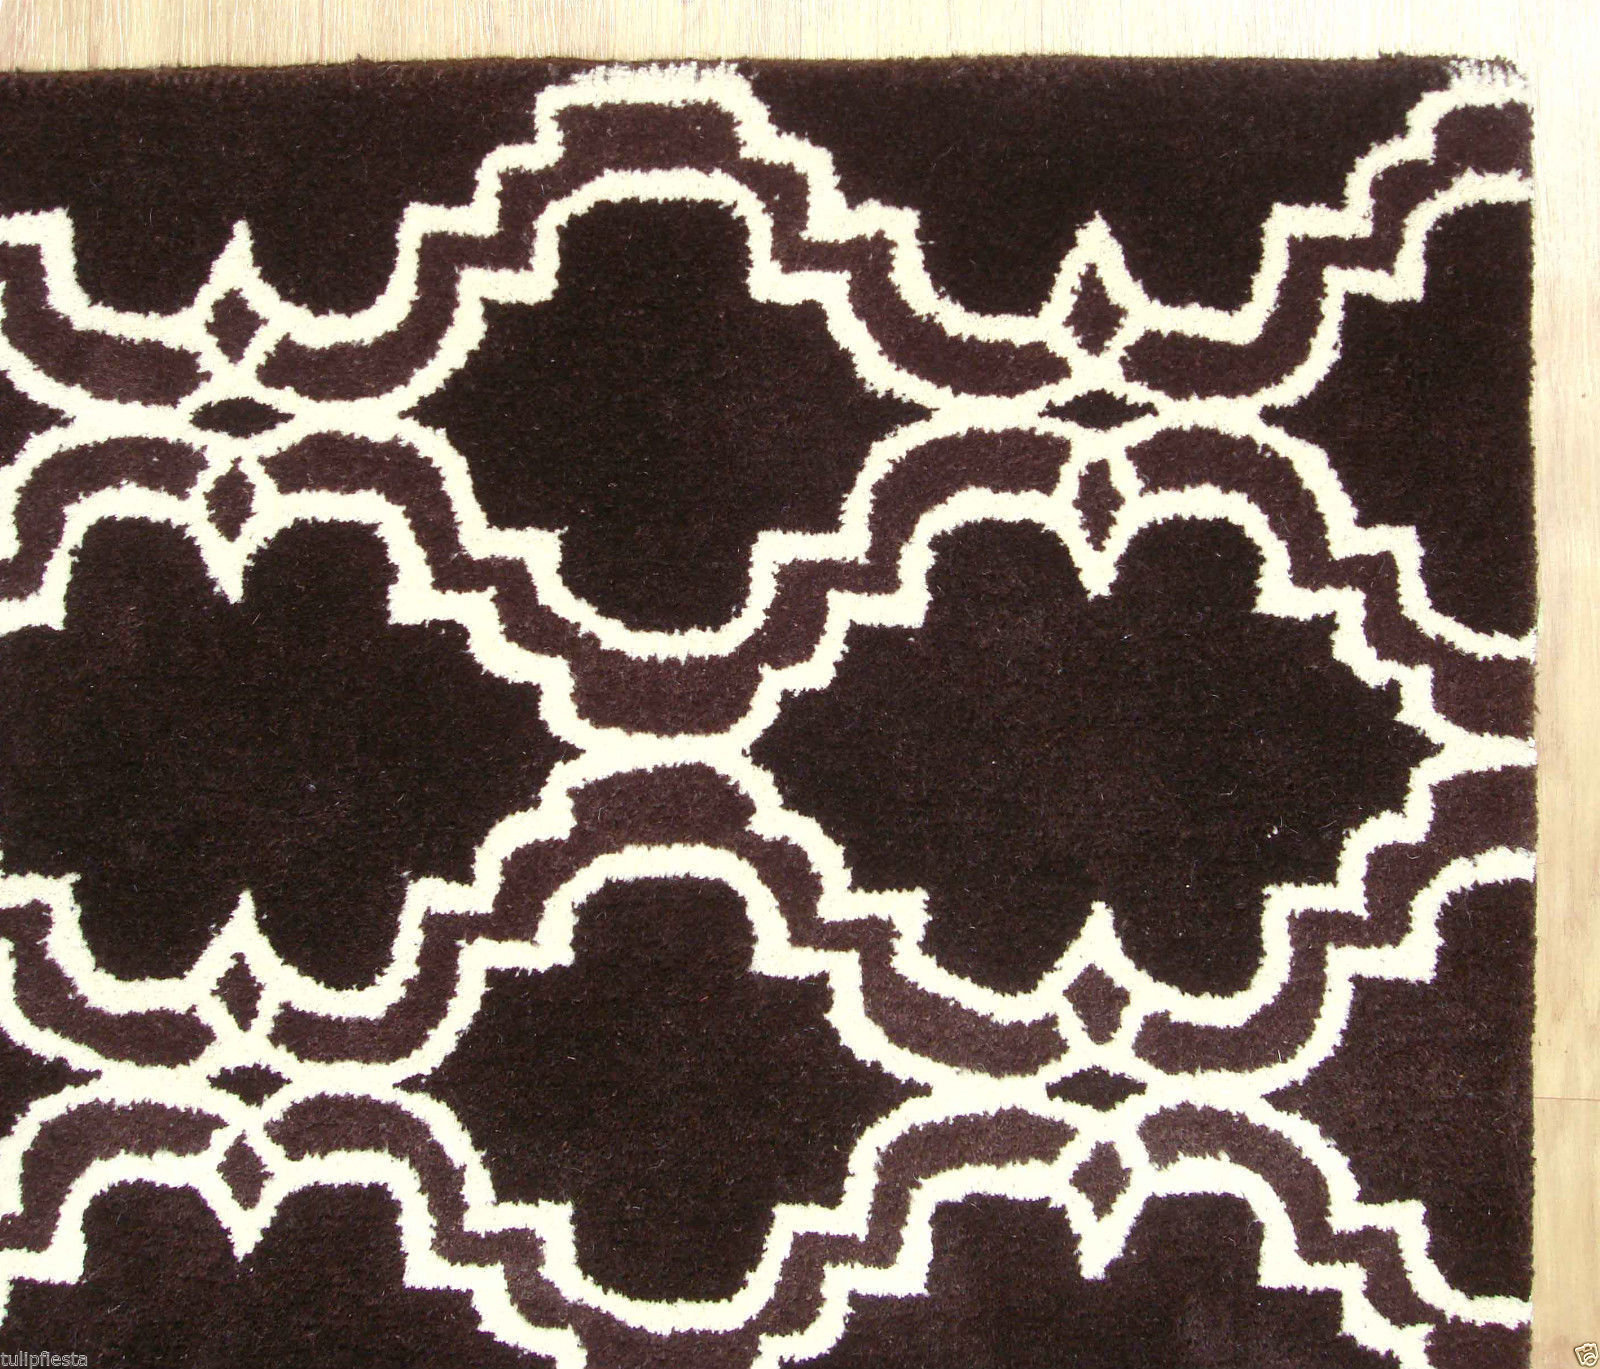 FRENCH ACCENT SCROLL TILE BROWN 8X10 HANDMADE PERSIANSTYLE WOOL AREA RUG